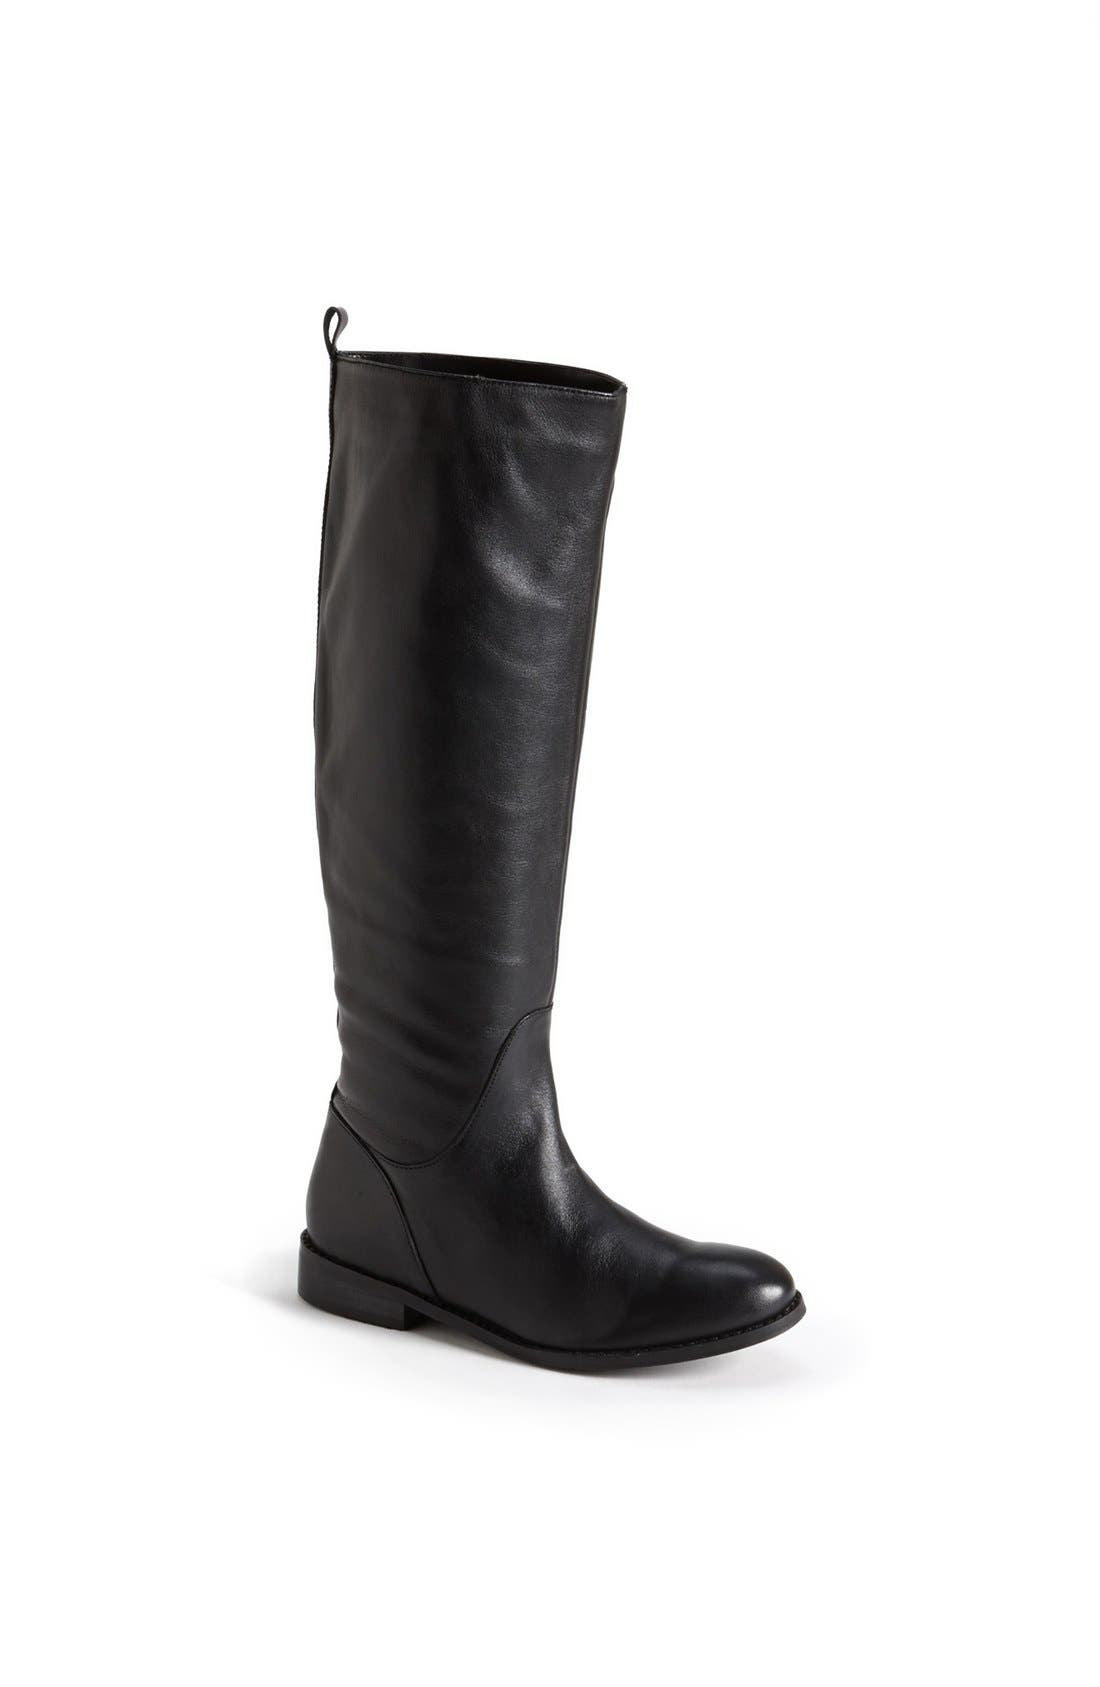 Alternate Image 1 Selected - Topshop 'Dancer' Leather Riding Boot